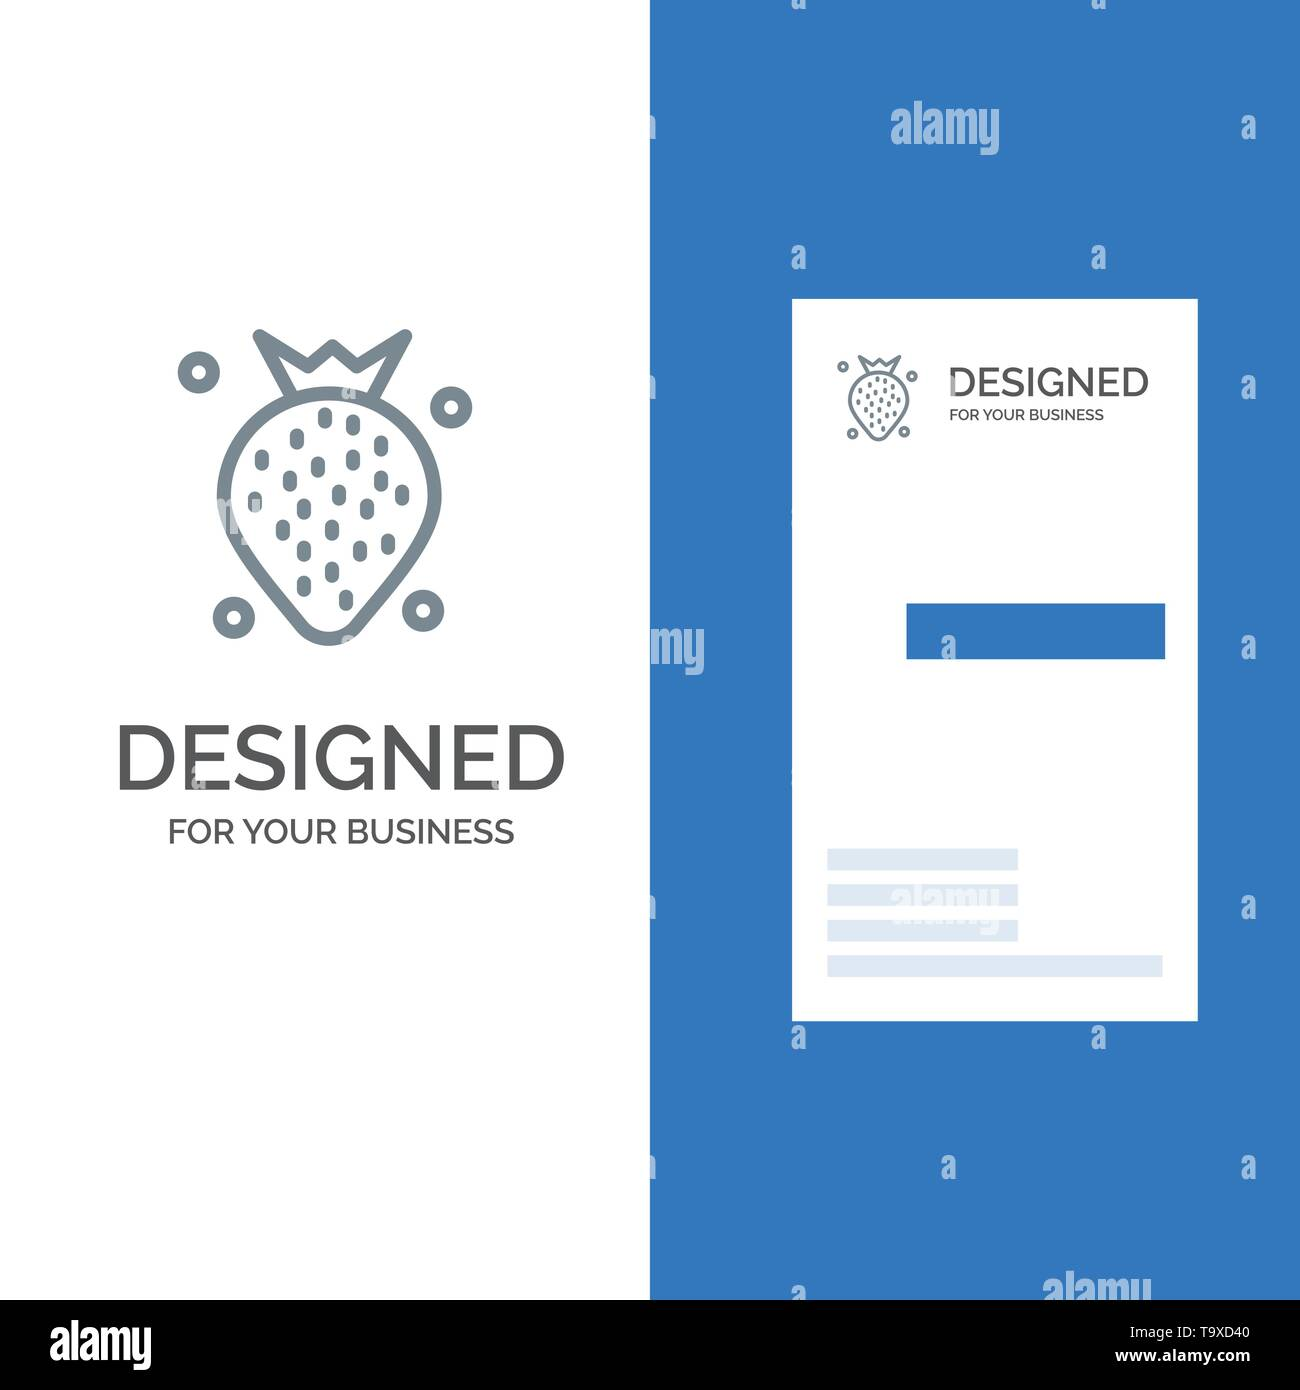 Strawberry, Food, Fruit, Berry Grey Logo Design and Business Card Template - Stock Image